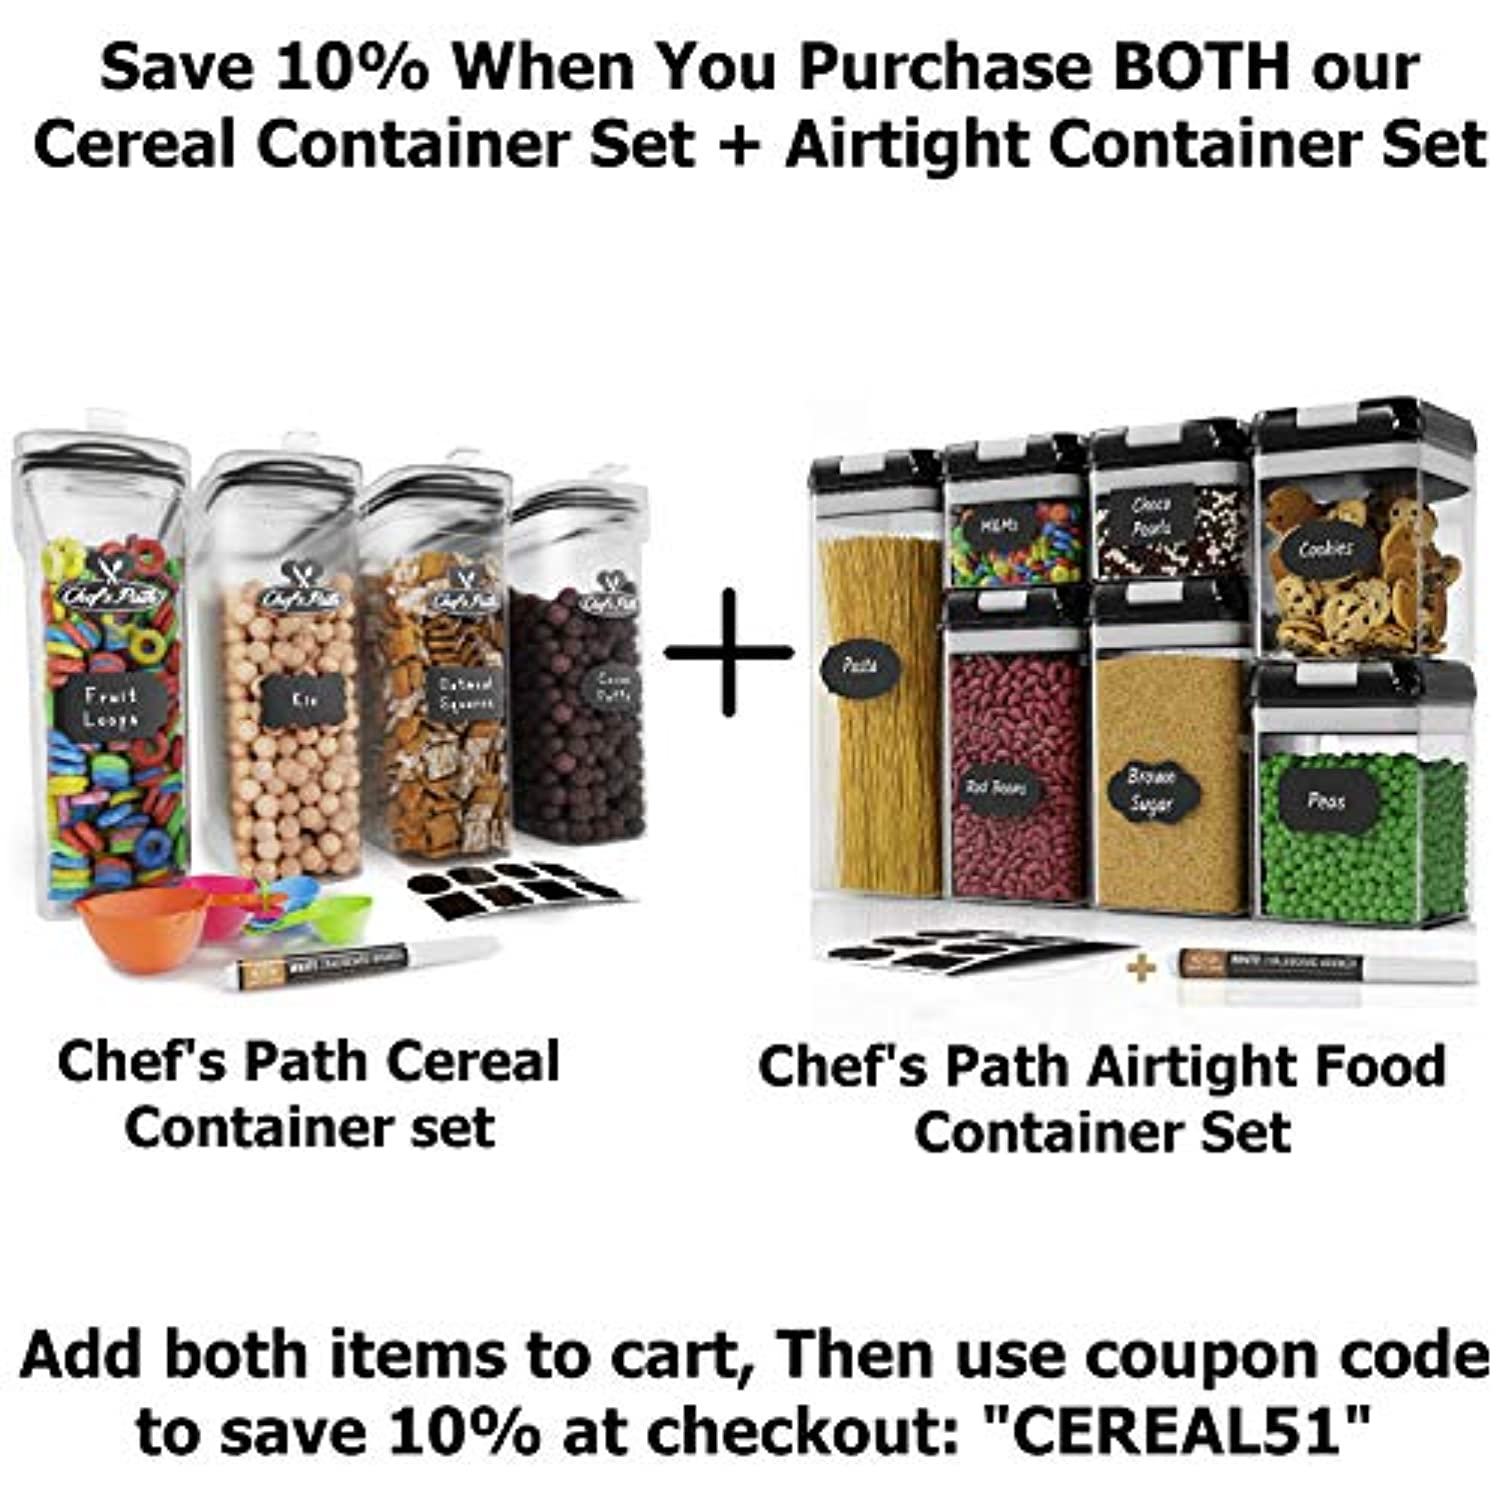 Classier: Buy Chef's Path Chef's Path Airtight Food Storage Container Set - 7 PC Set - Labels & Marker - Kitchen & Pantry Organization Containers - BPA-Free - Clear Plastic Canisters for Flour, Cereal with Improved Lids